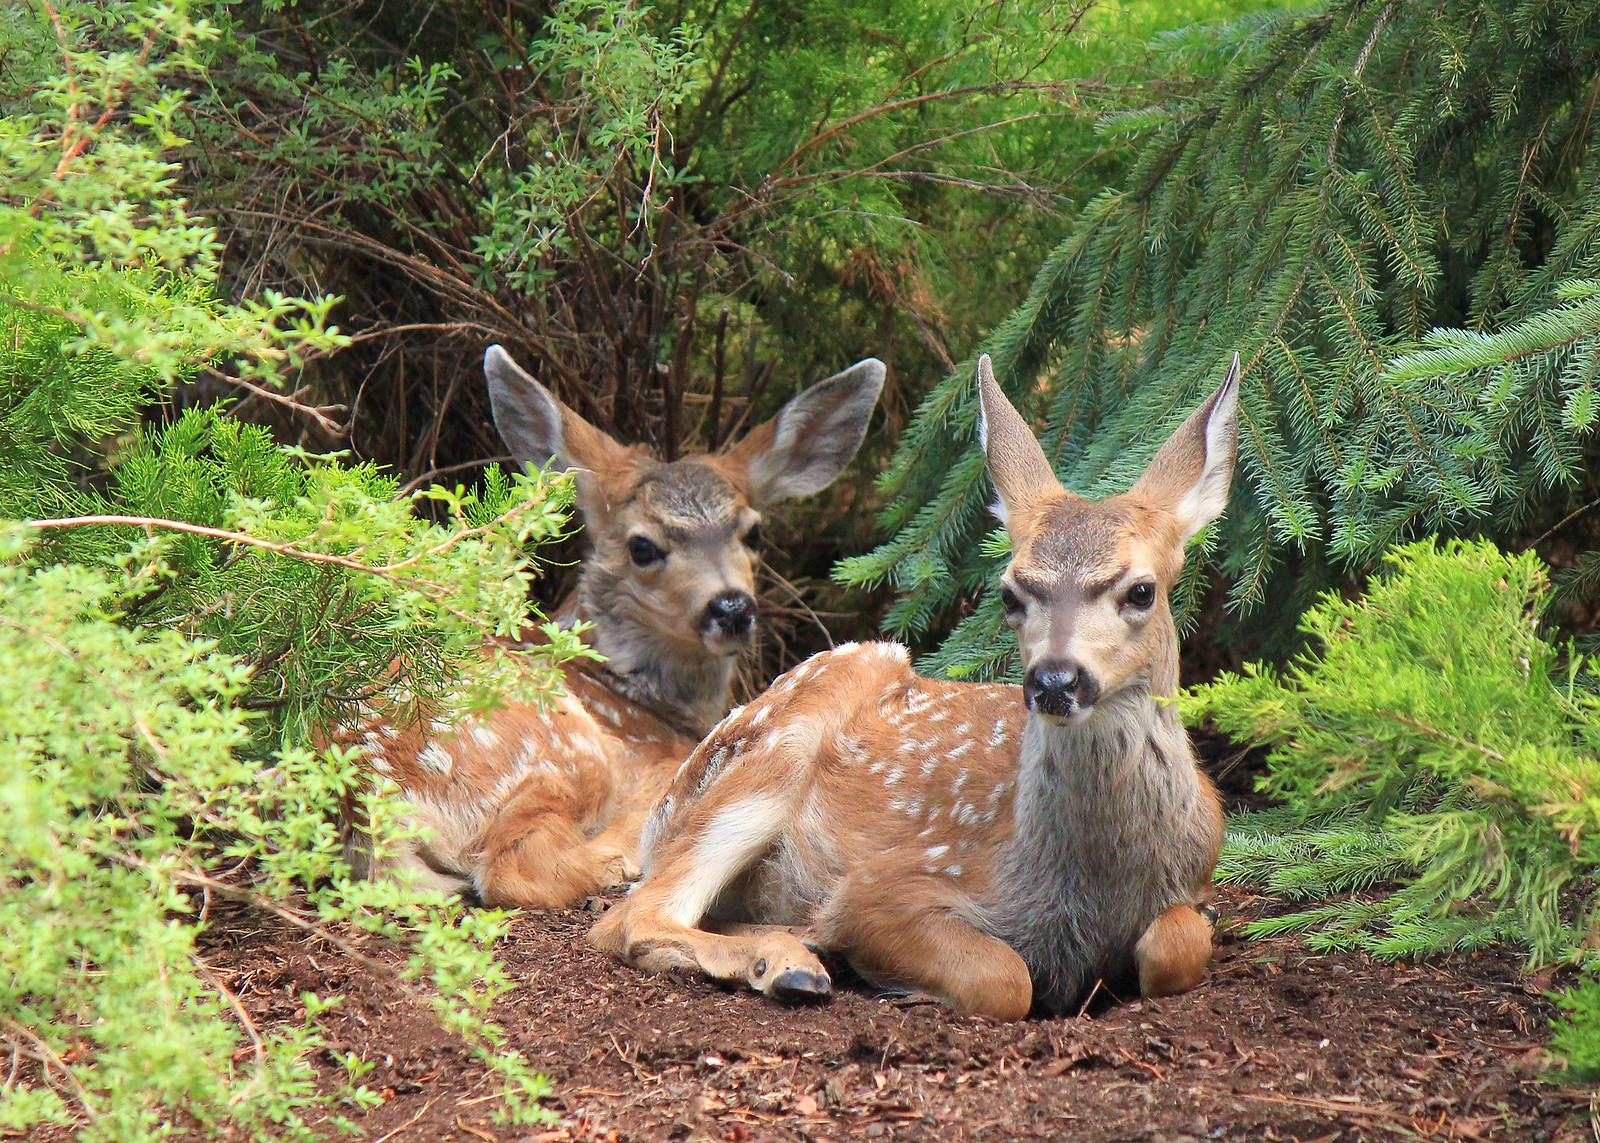 leave young wildlife in the wild